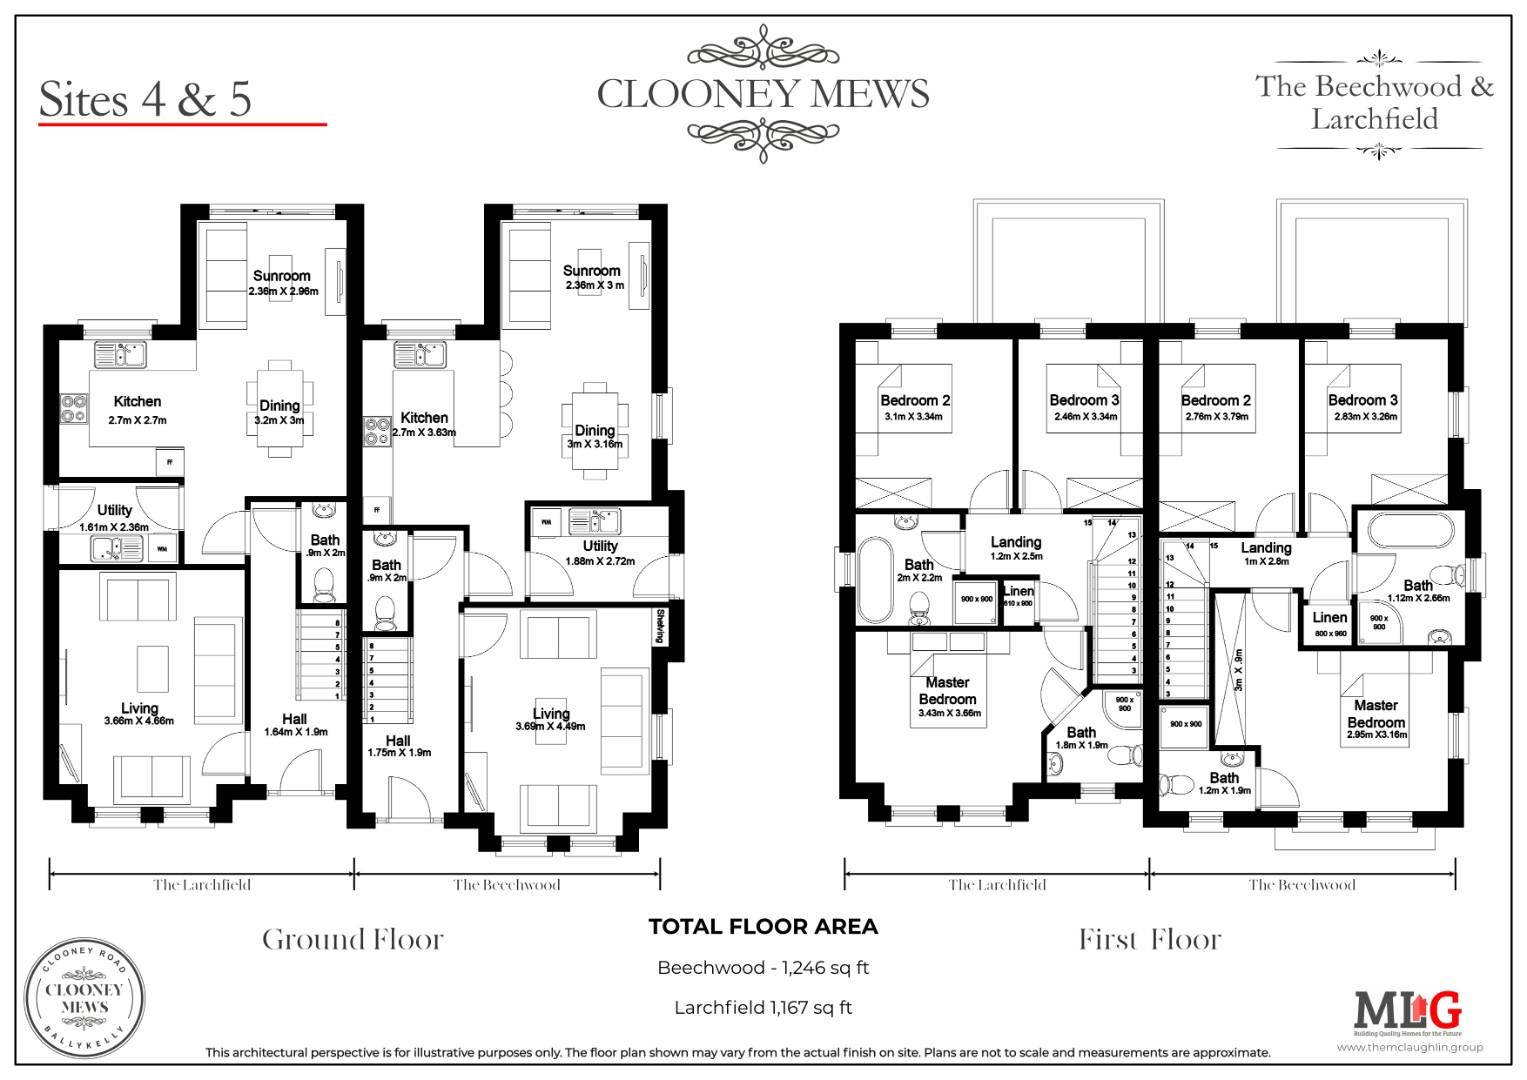 CLOONEY MEWS - The Beechwood - Floor Plan - 4-5.jp